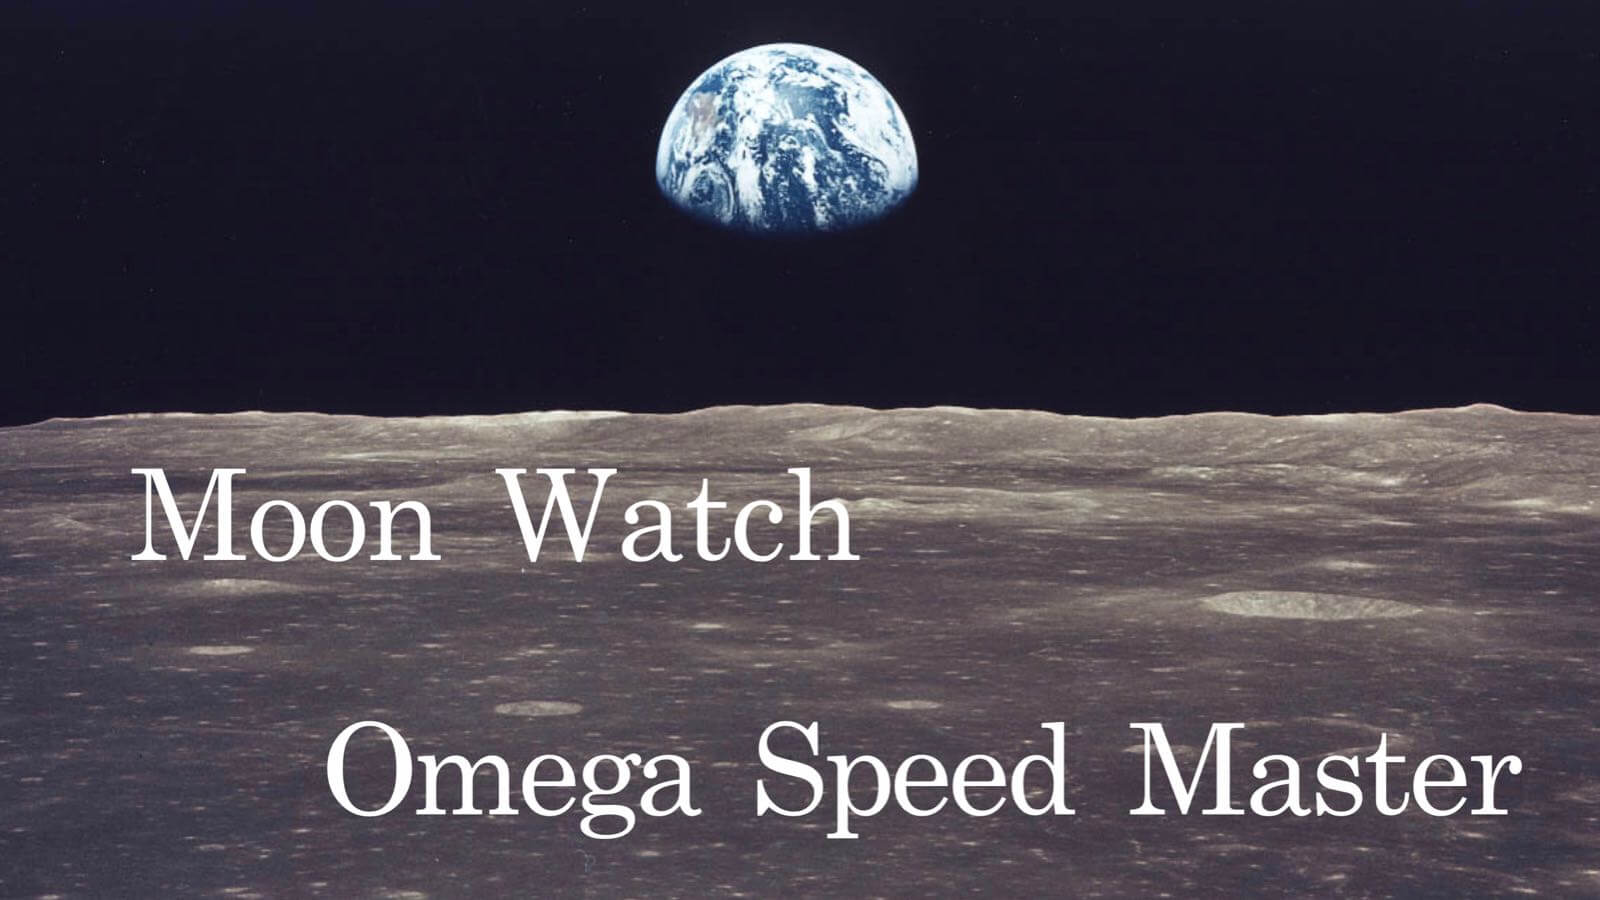 0029 The first watch I went to the moon  Omega Speedmaster story 01